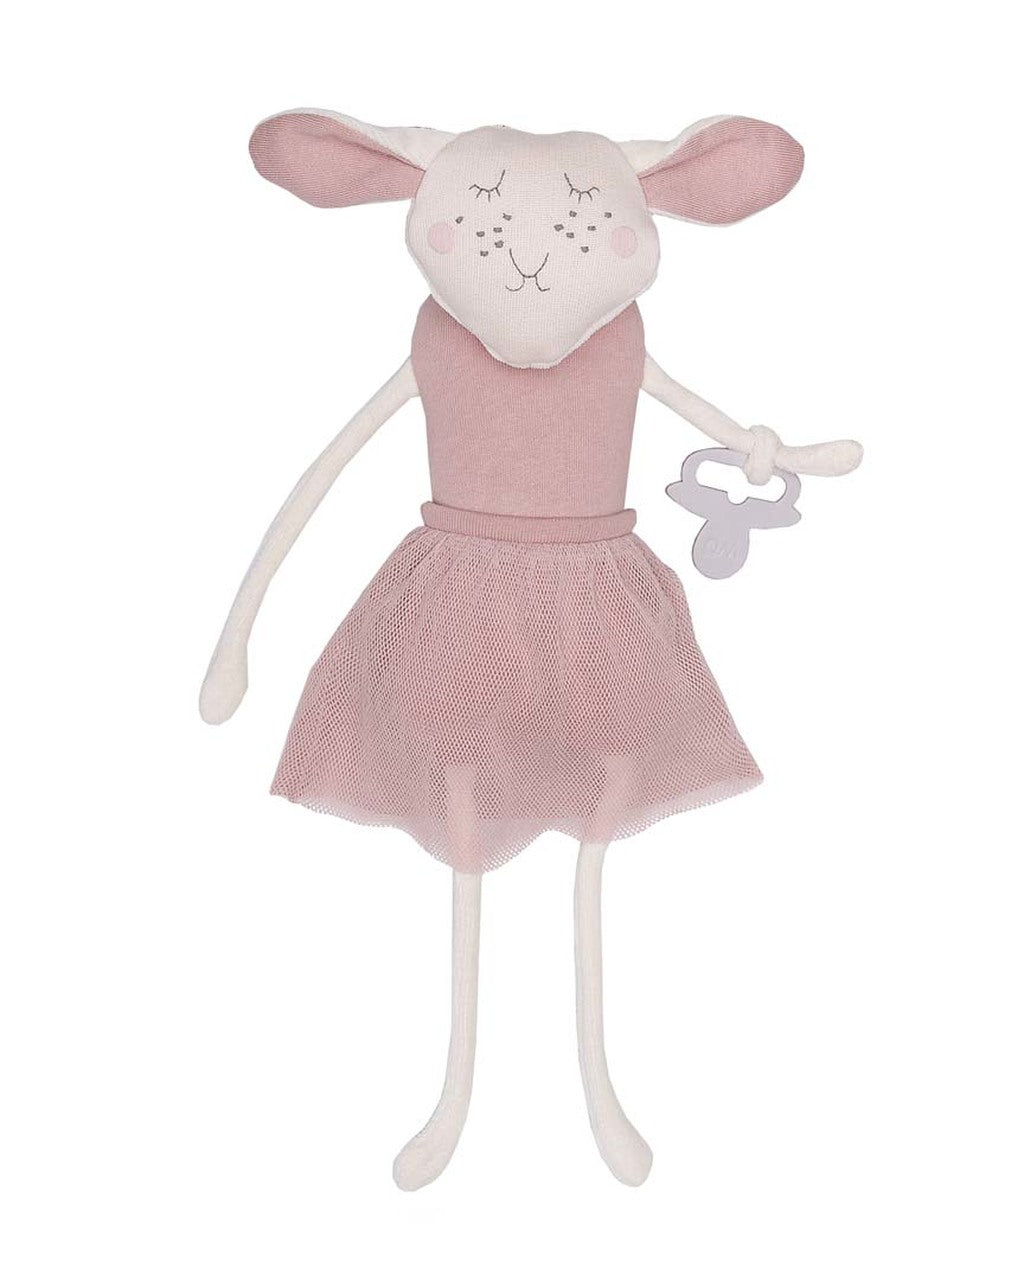 Toy Sheep with Pink tutu skirt. By Wooly Organic